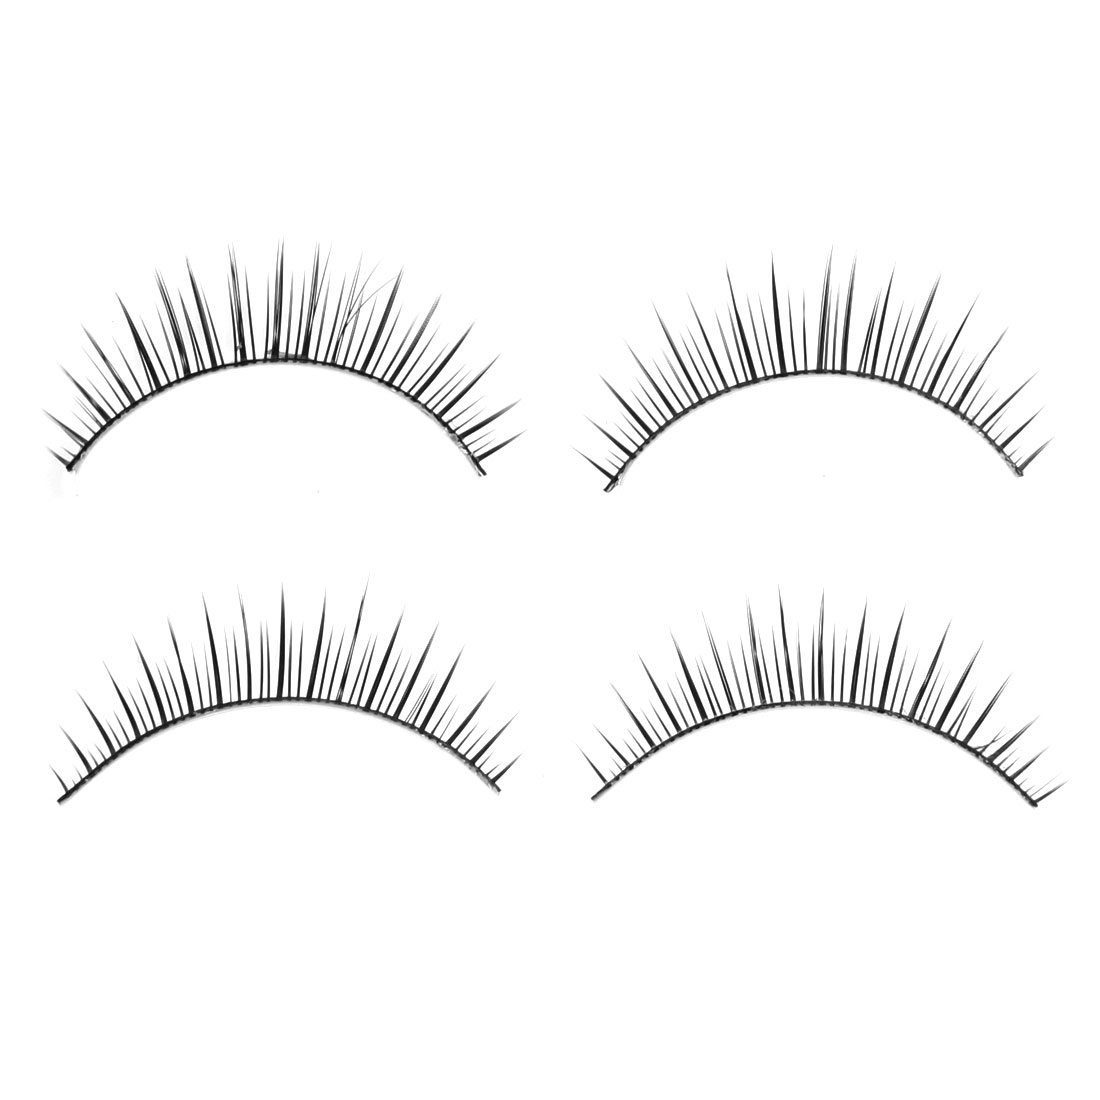 Unique Bargains Unique Bargains Long Thick False Eyelashes Fake Lashes Extension 2 Pairs